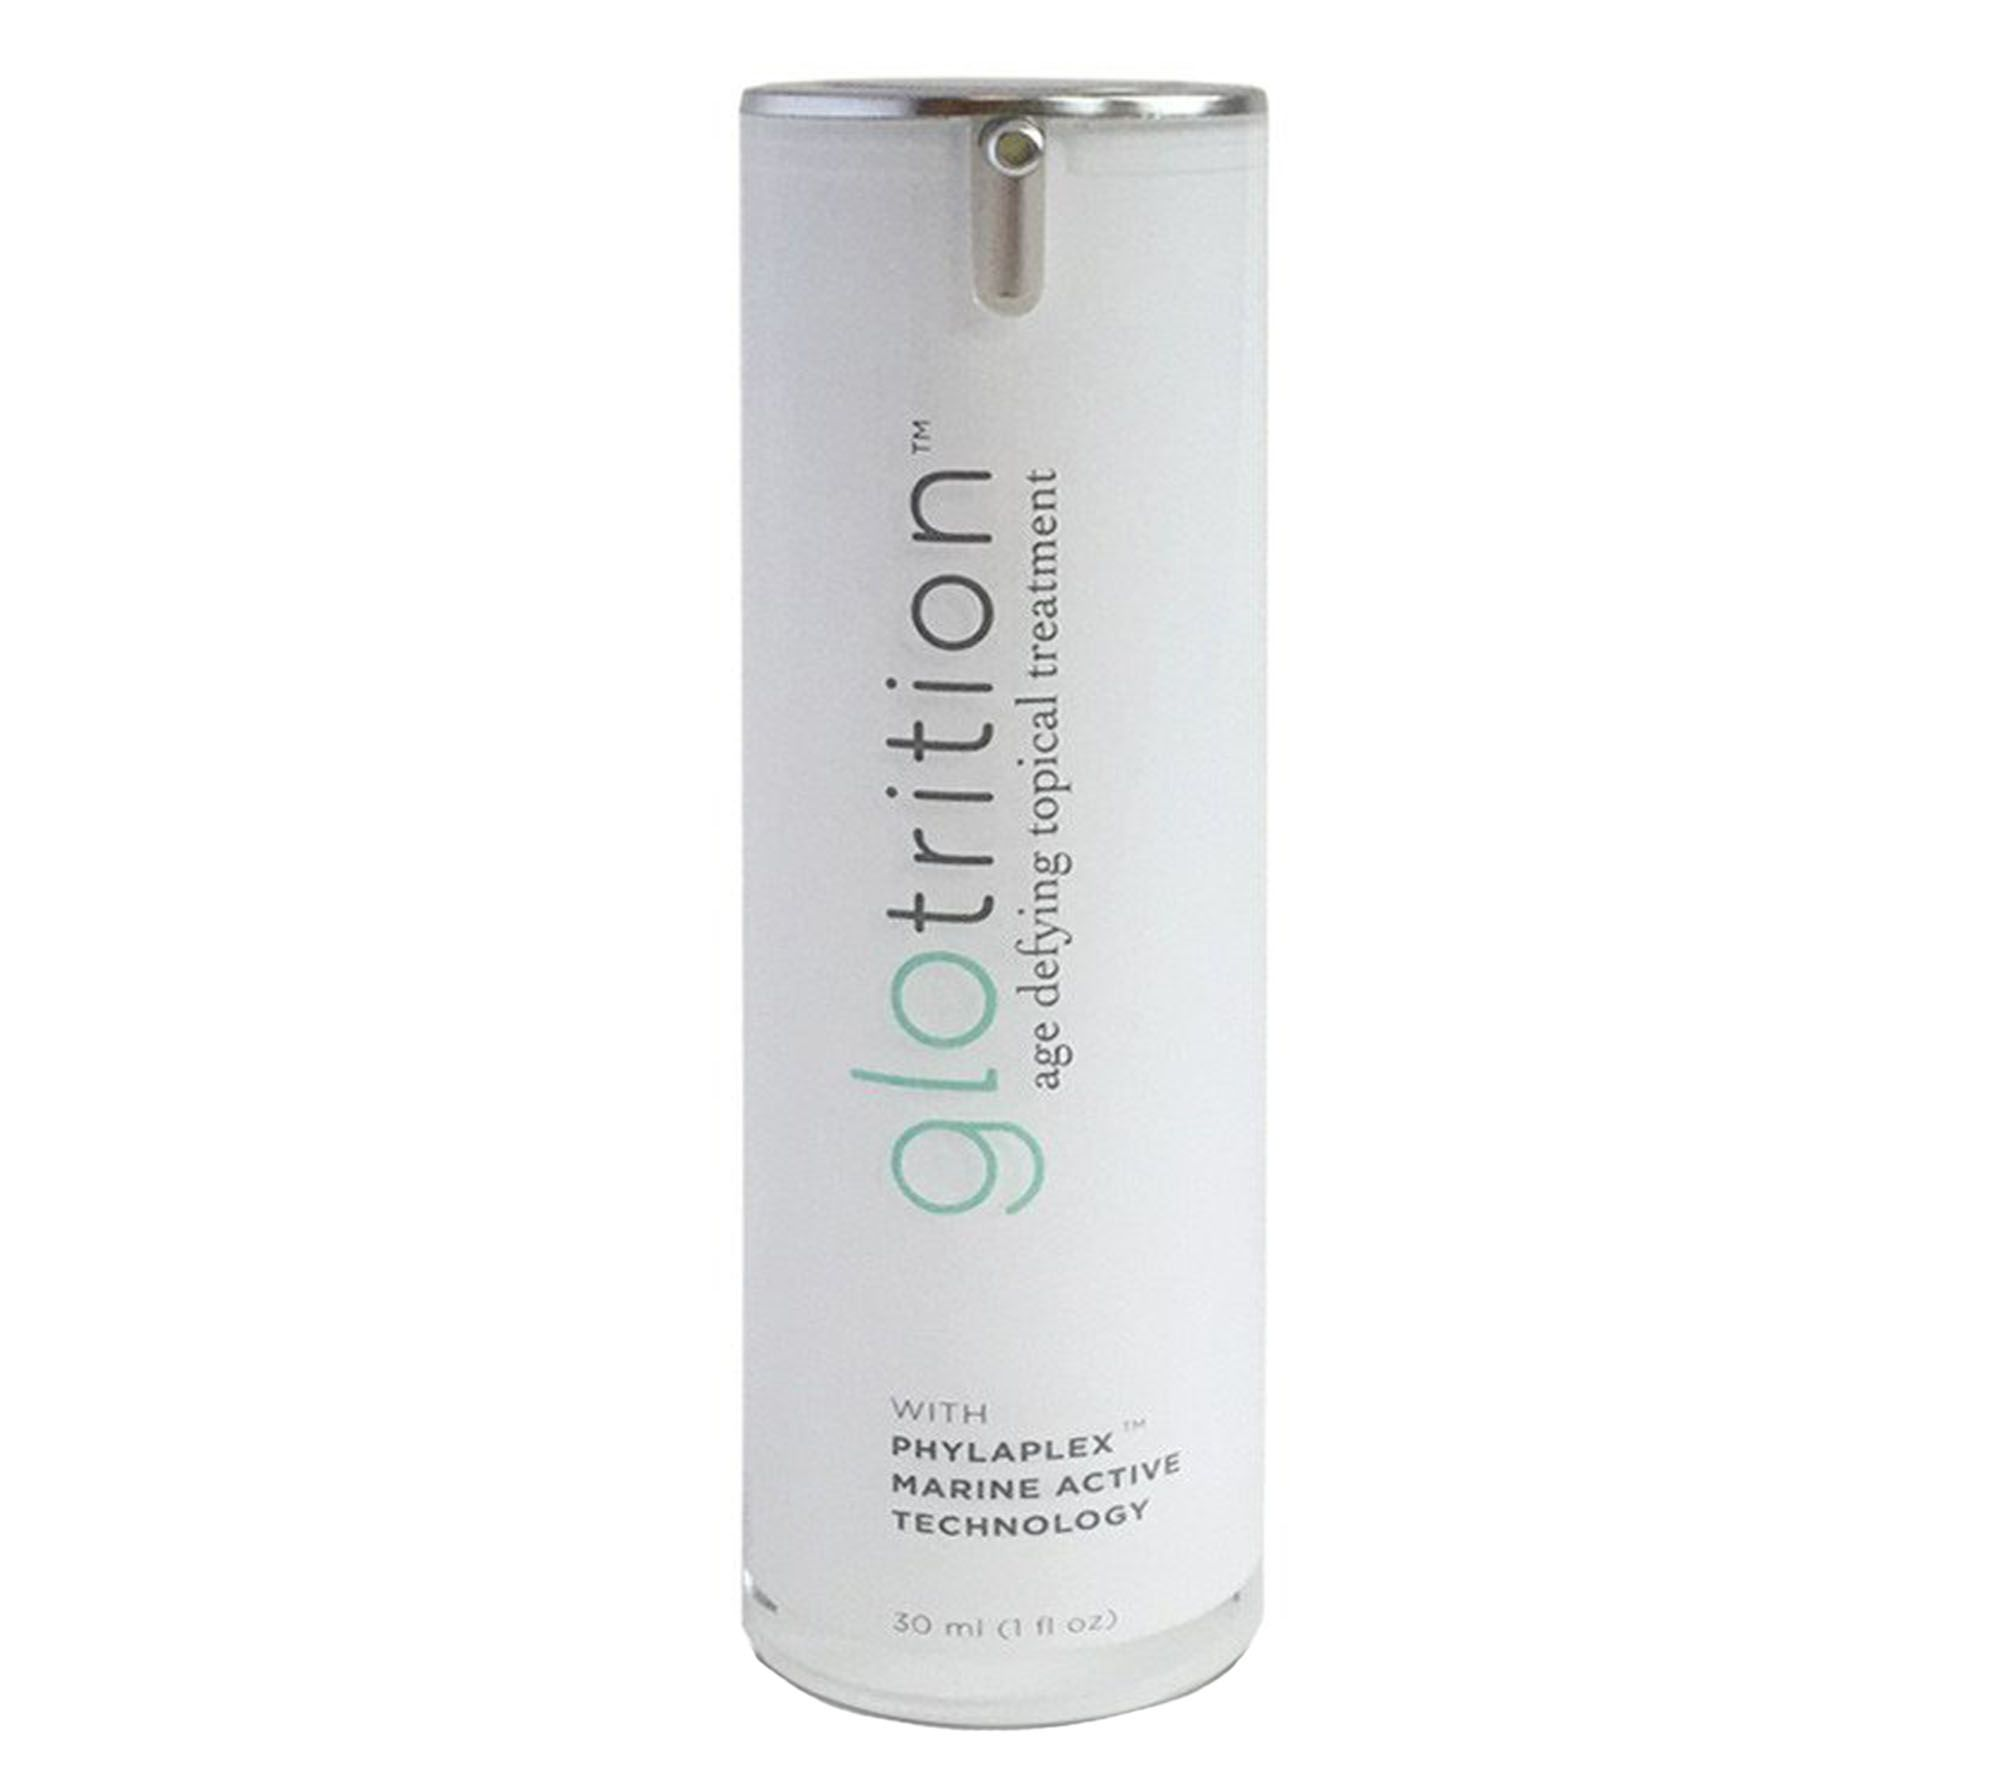 Glotrition Age Defying Topical Serum